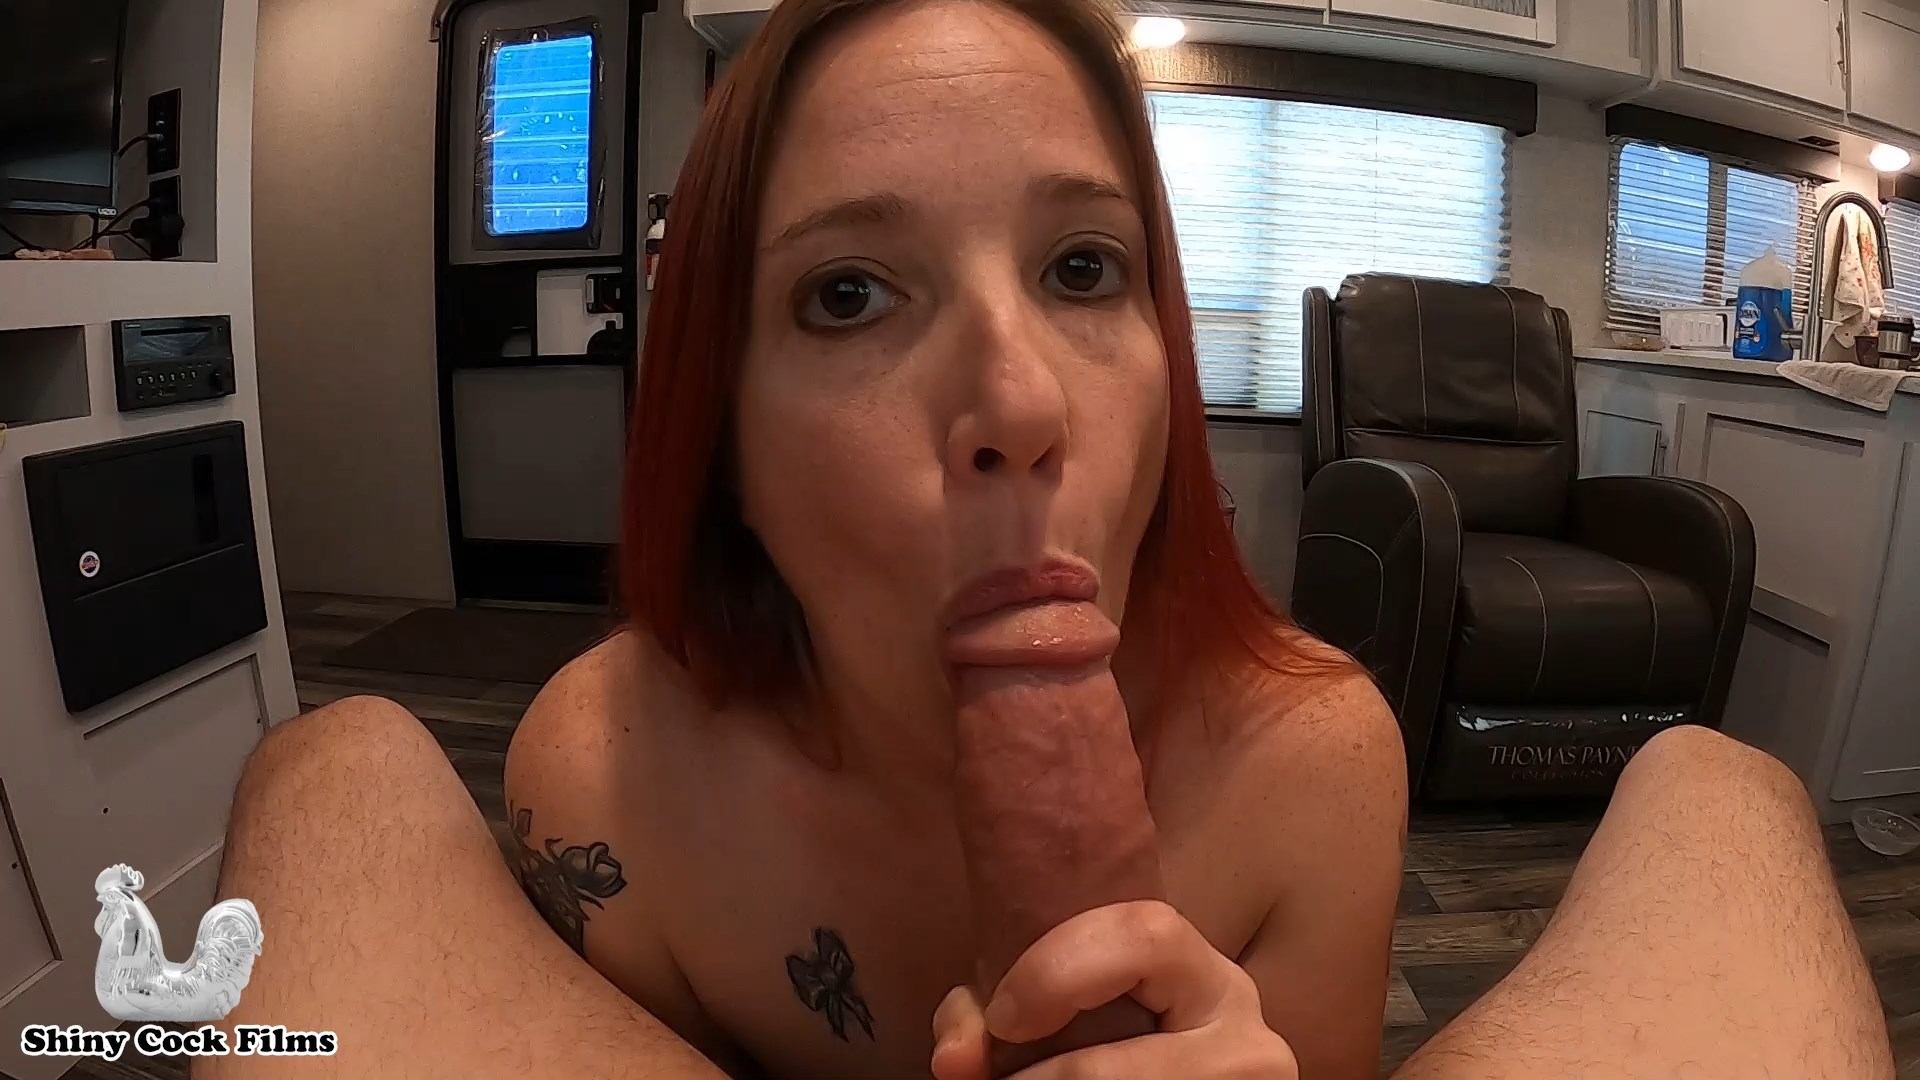 GirlNextDoor - Coronavirus Quarantine Step-Mom & Son Isolation Part 2